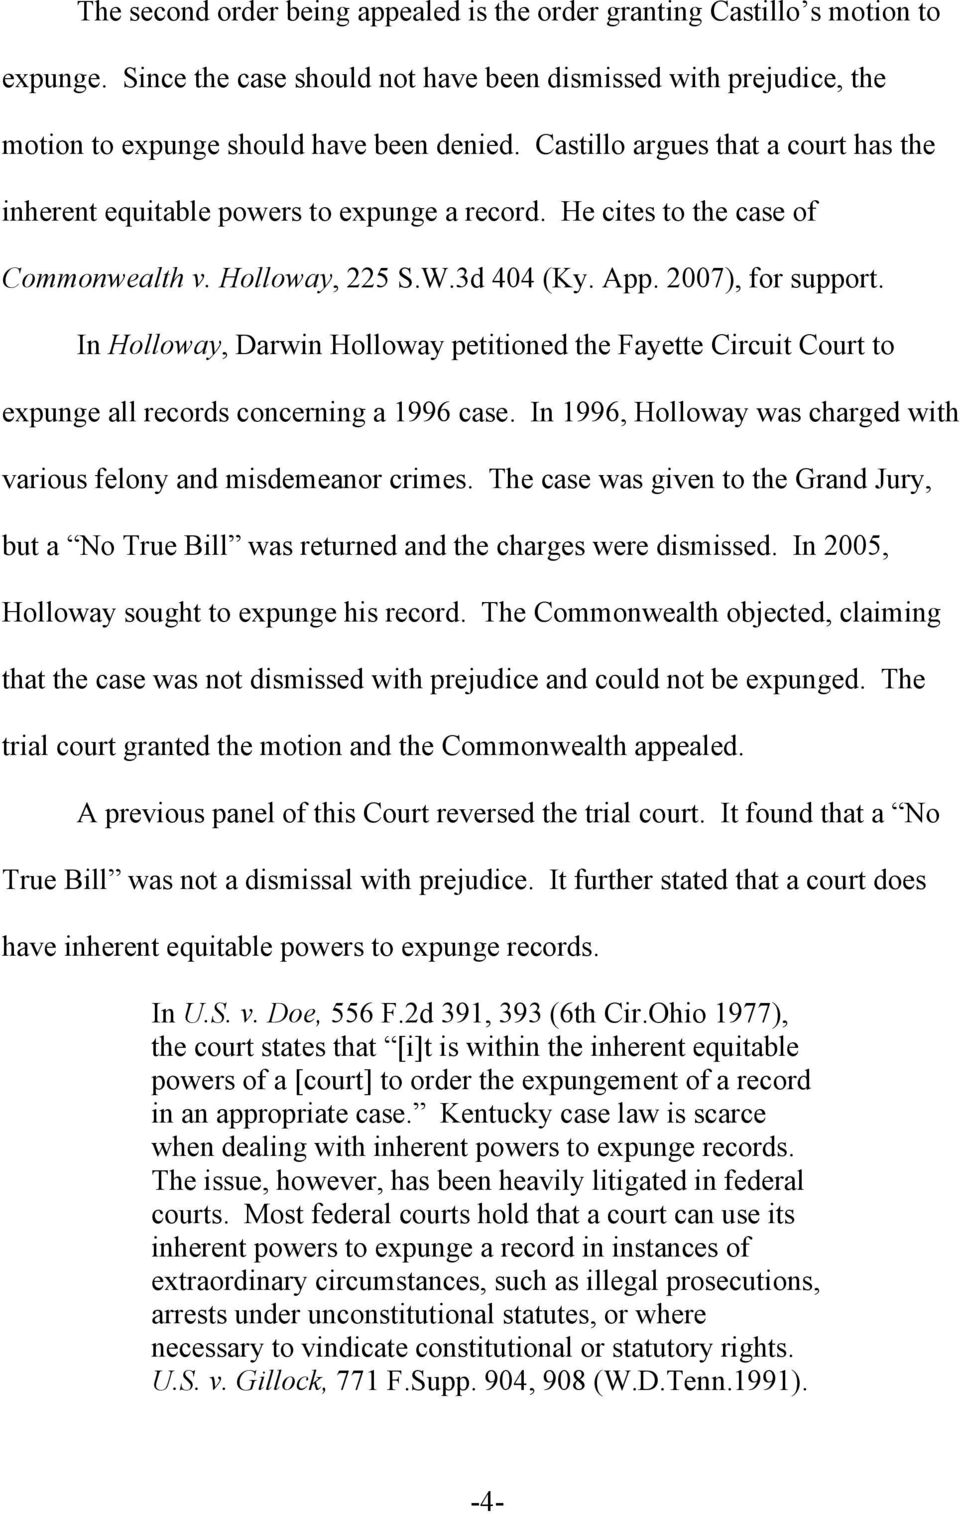 In Holloway, Darwin Holloway petitioned the Fayette Circuit Court to expunge all records concerning a 1996 case. In 1996, Holloway was charged with various felony and misdemeanor crimes.